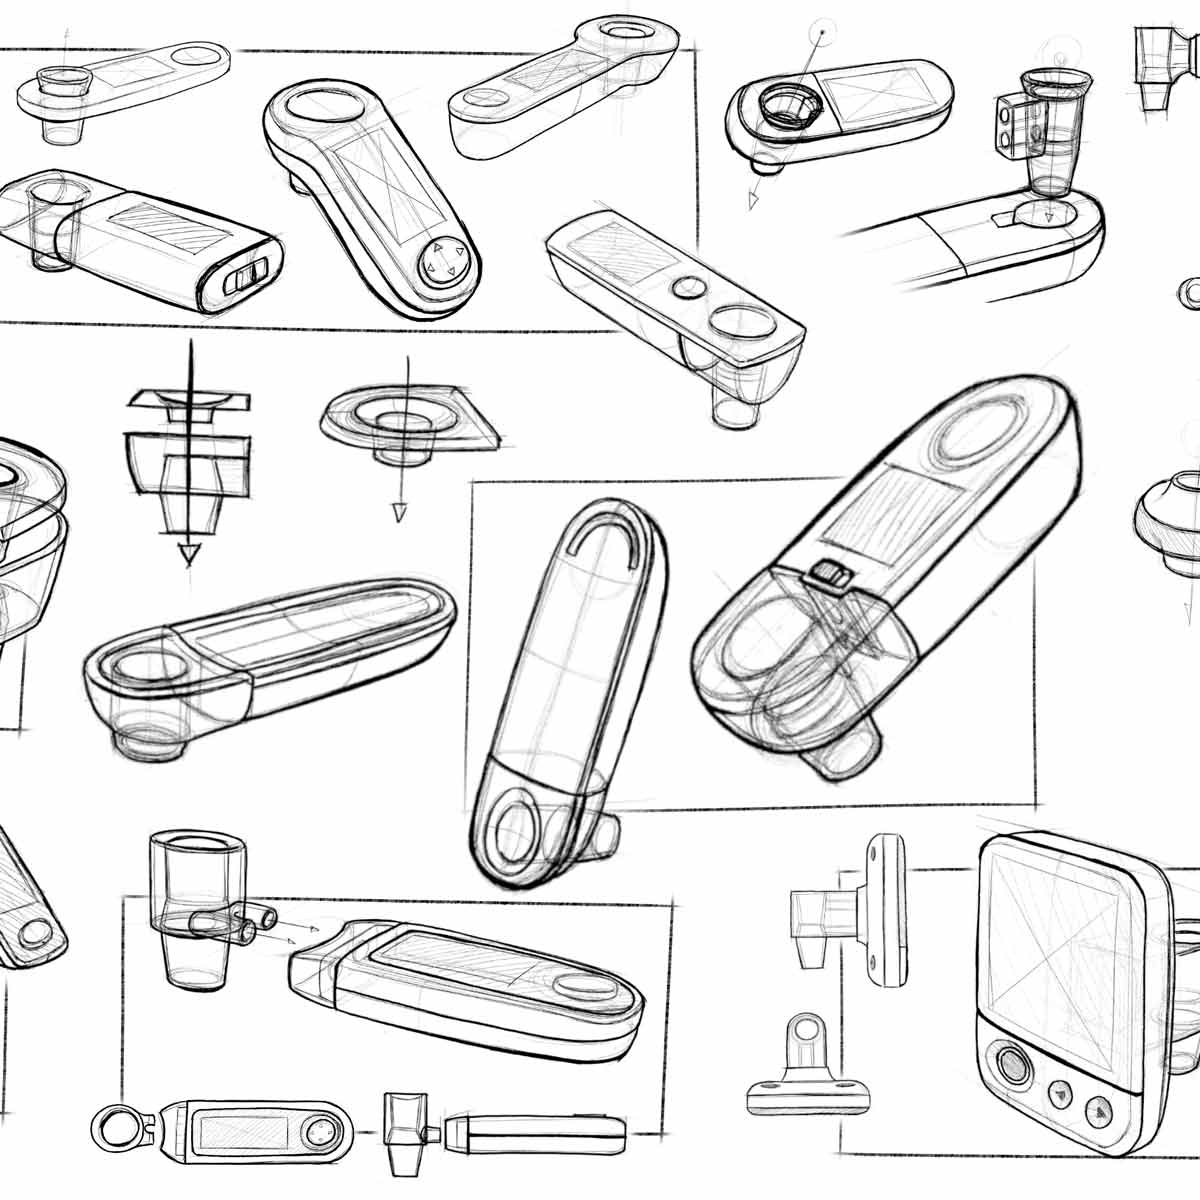 Concept Sketches | Product Development & Invention Help